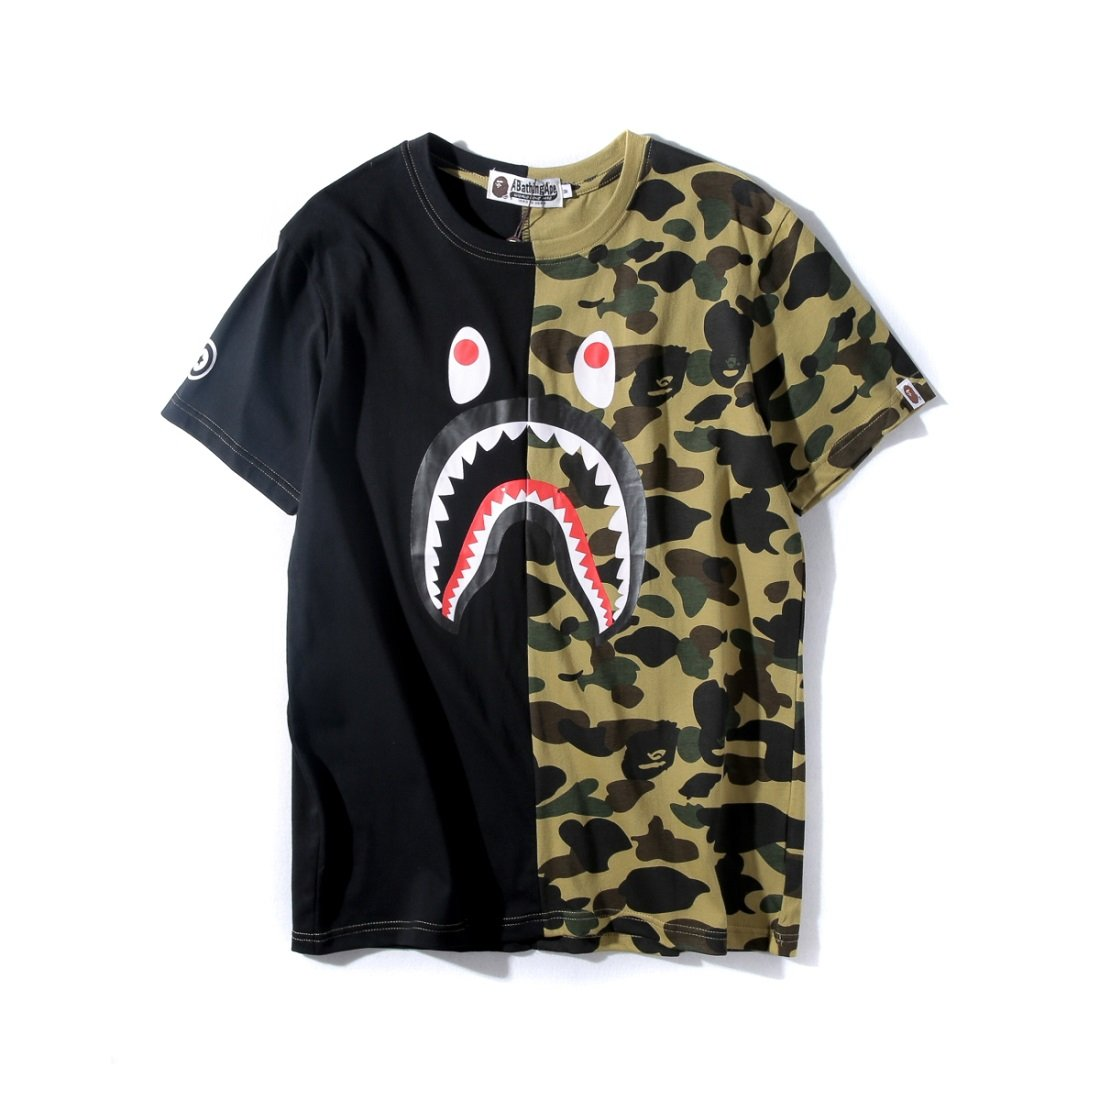 0dd1a4376 Amazon.com: Big Mouth Shark Ape Bape Camo Casual T Shirt Tees Unisex with  Round Neck Short Sleeve: Clothing